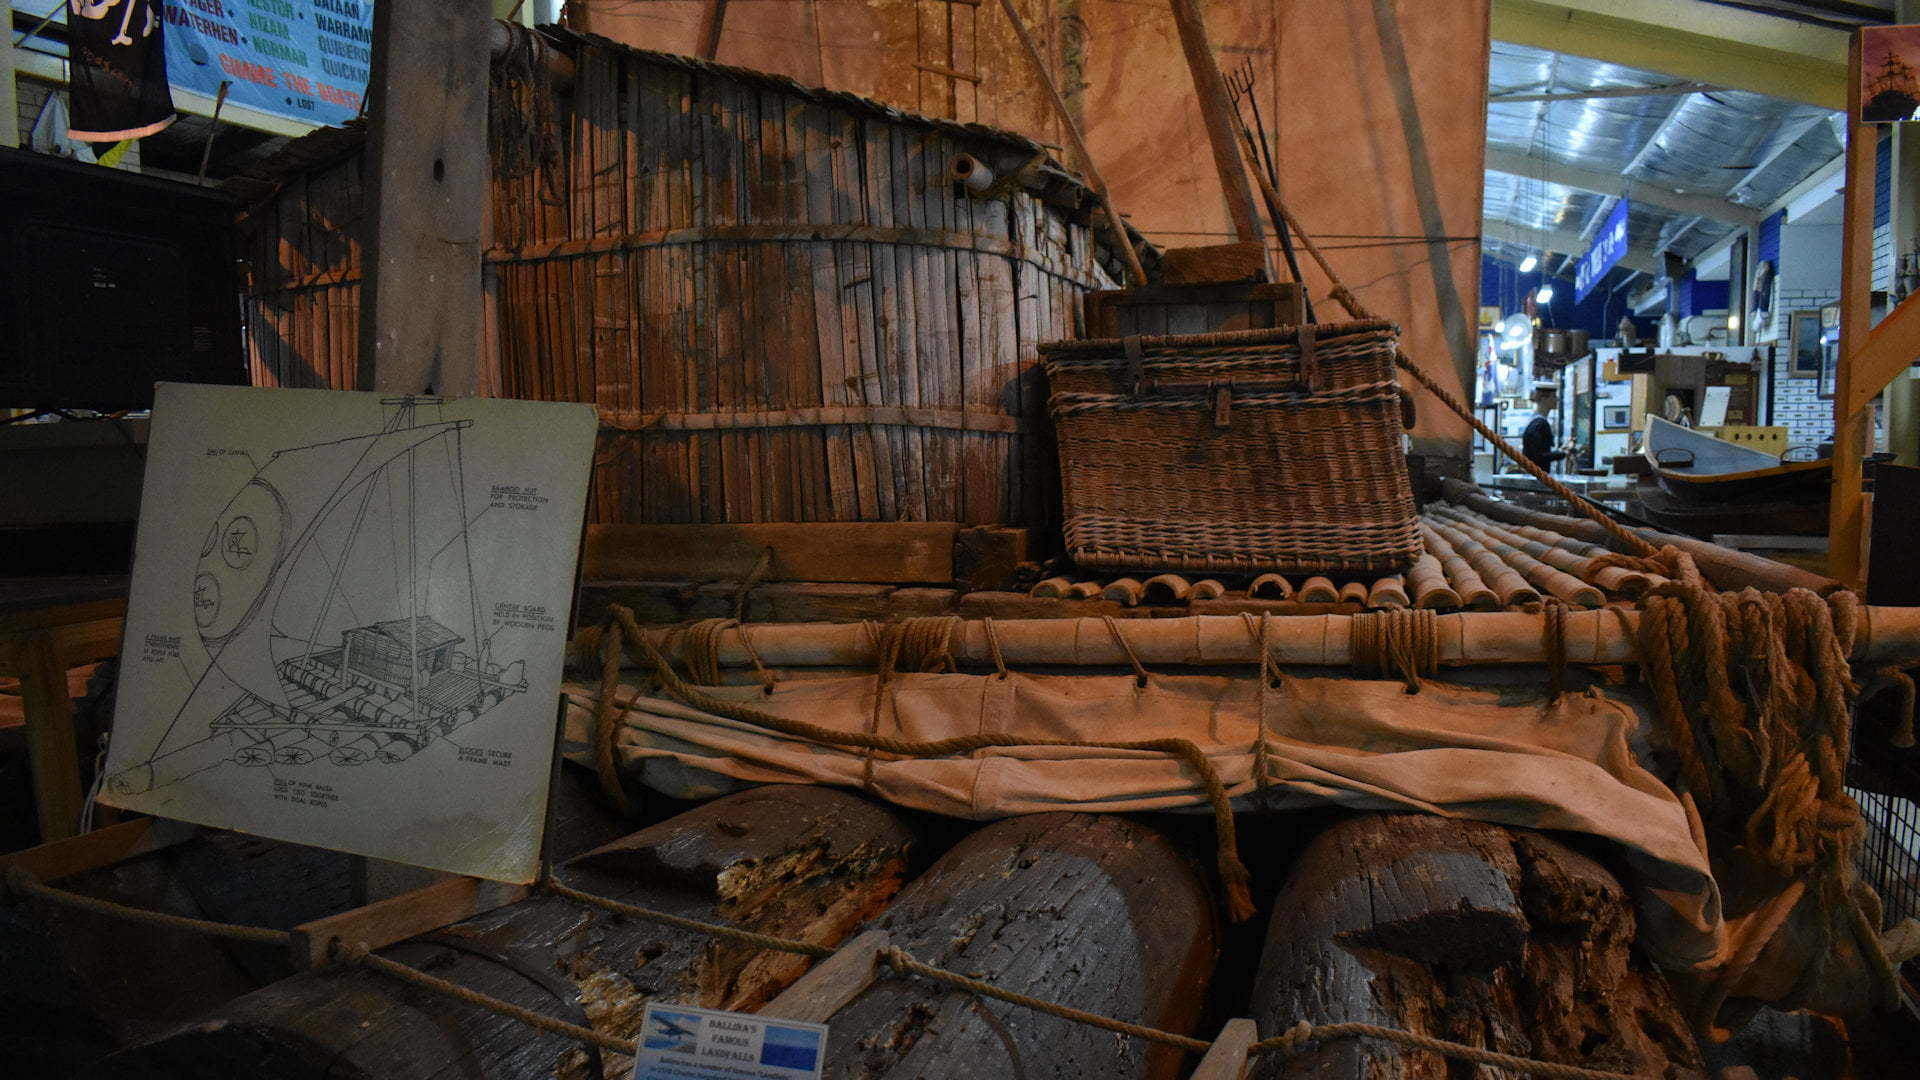 Raft used to sail from Ecuador to Ballina, at the Ballina Naval & Maritime Museum